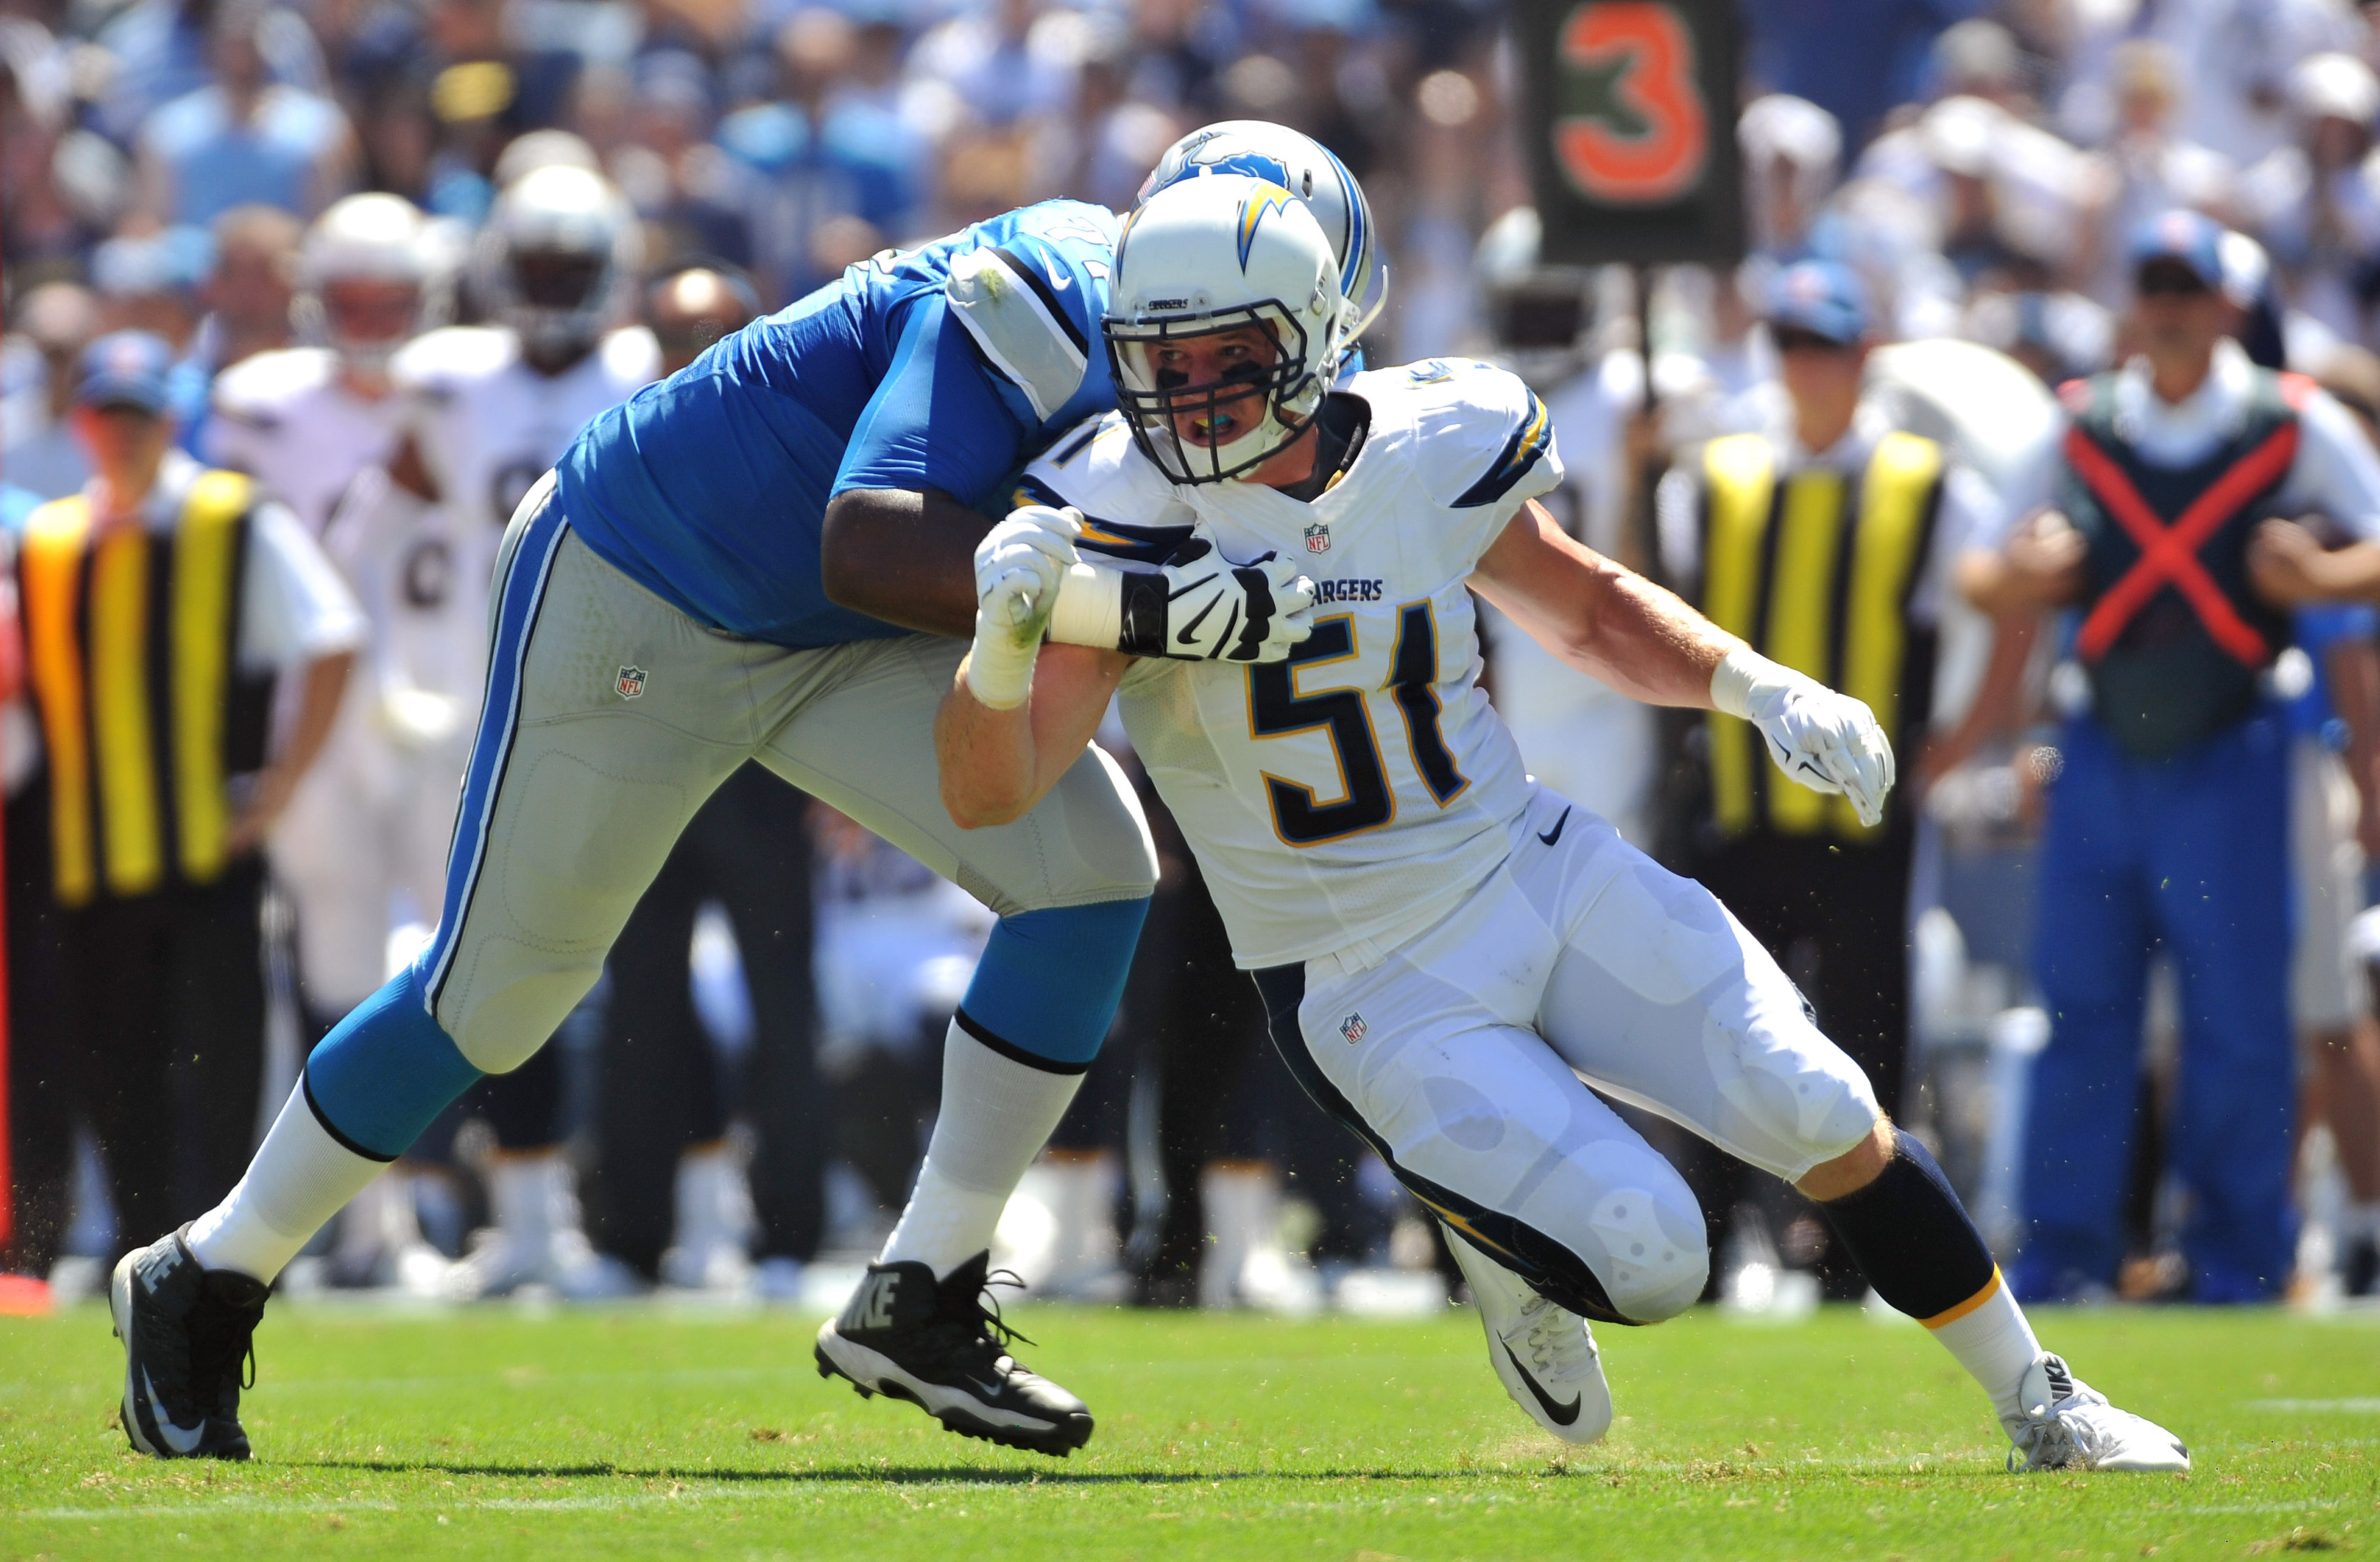 Sep 13, 2015; San Diego, CA, USA; San Diego Chargers linebacker Kyle Emanuel (51) is defended by Detroit Lions tackle Cornelius Lucas (77) during the game at Qualcomm Stadium. San Diego won 33-28. Mandatory Credit: Orlando Ramirez-USA TODAY Sports